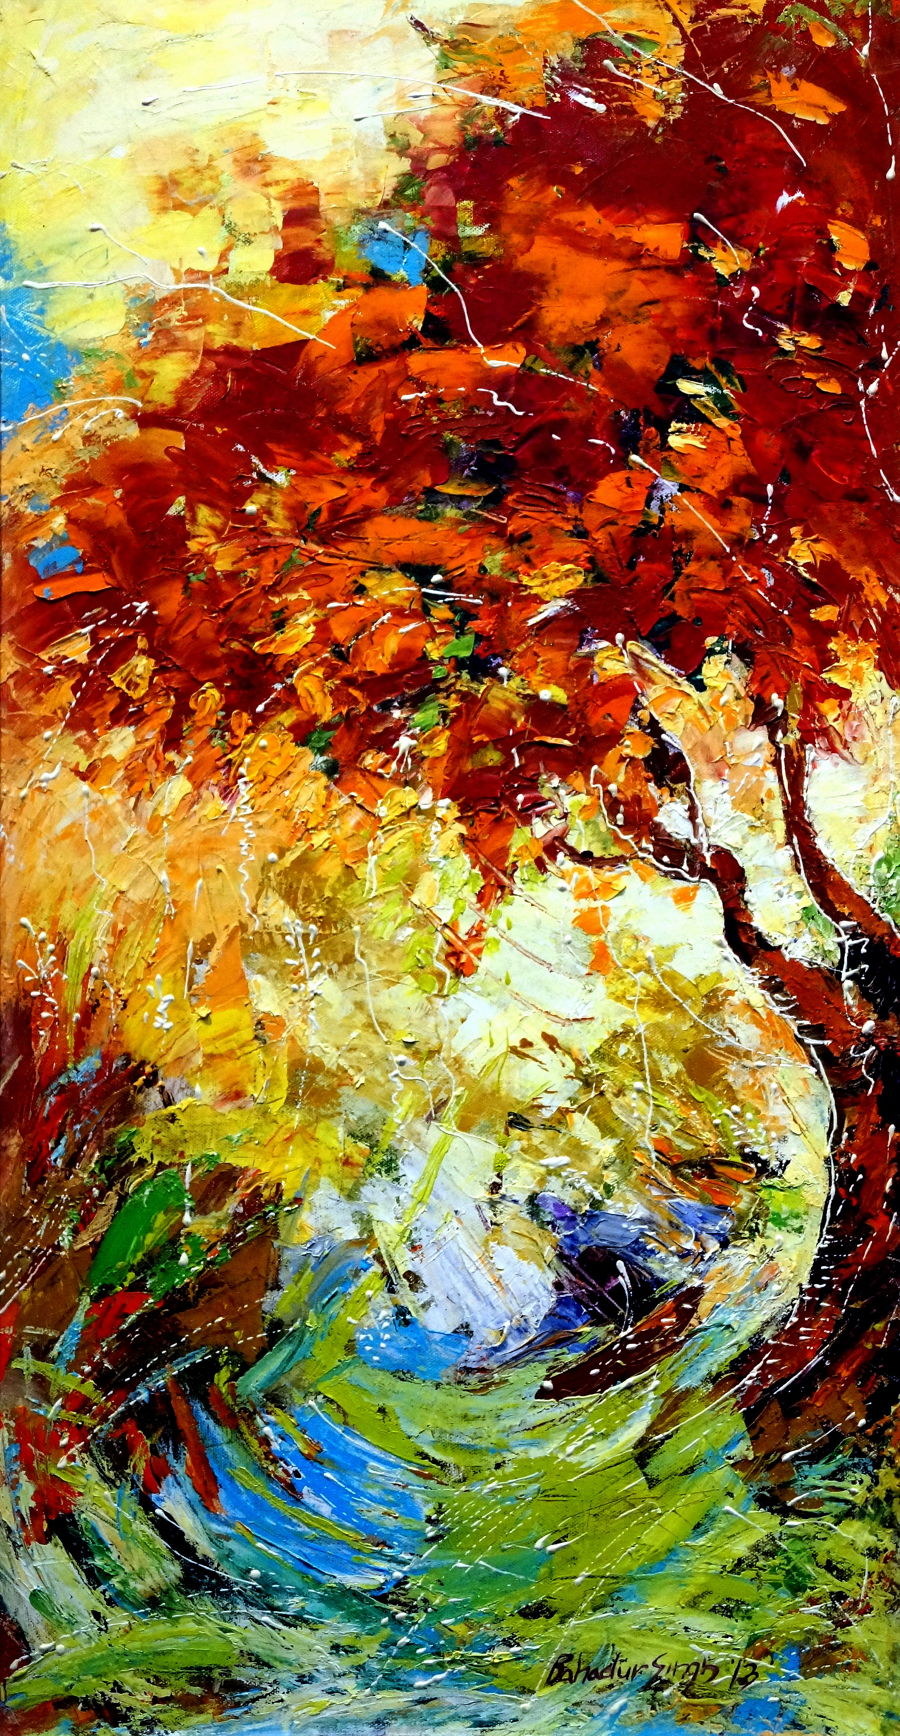 Abstract Oil painting Nature 3 by Bahadur Singh